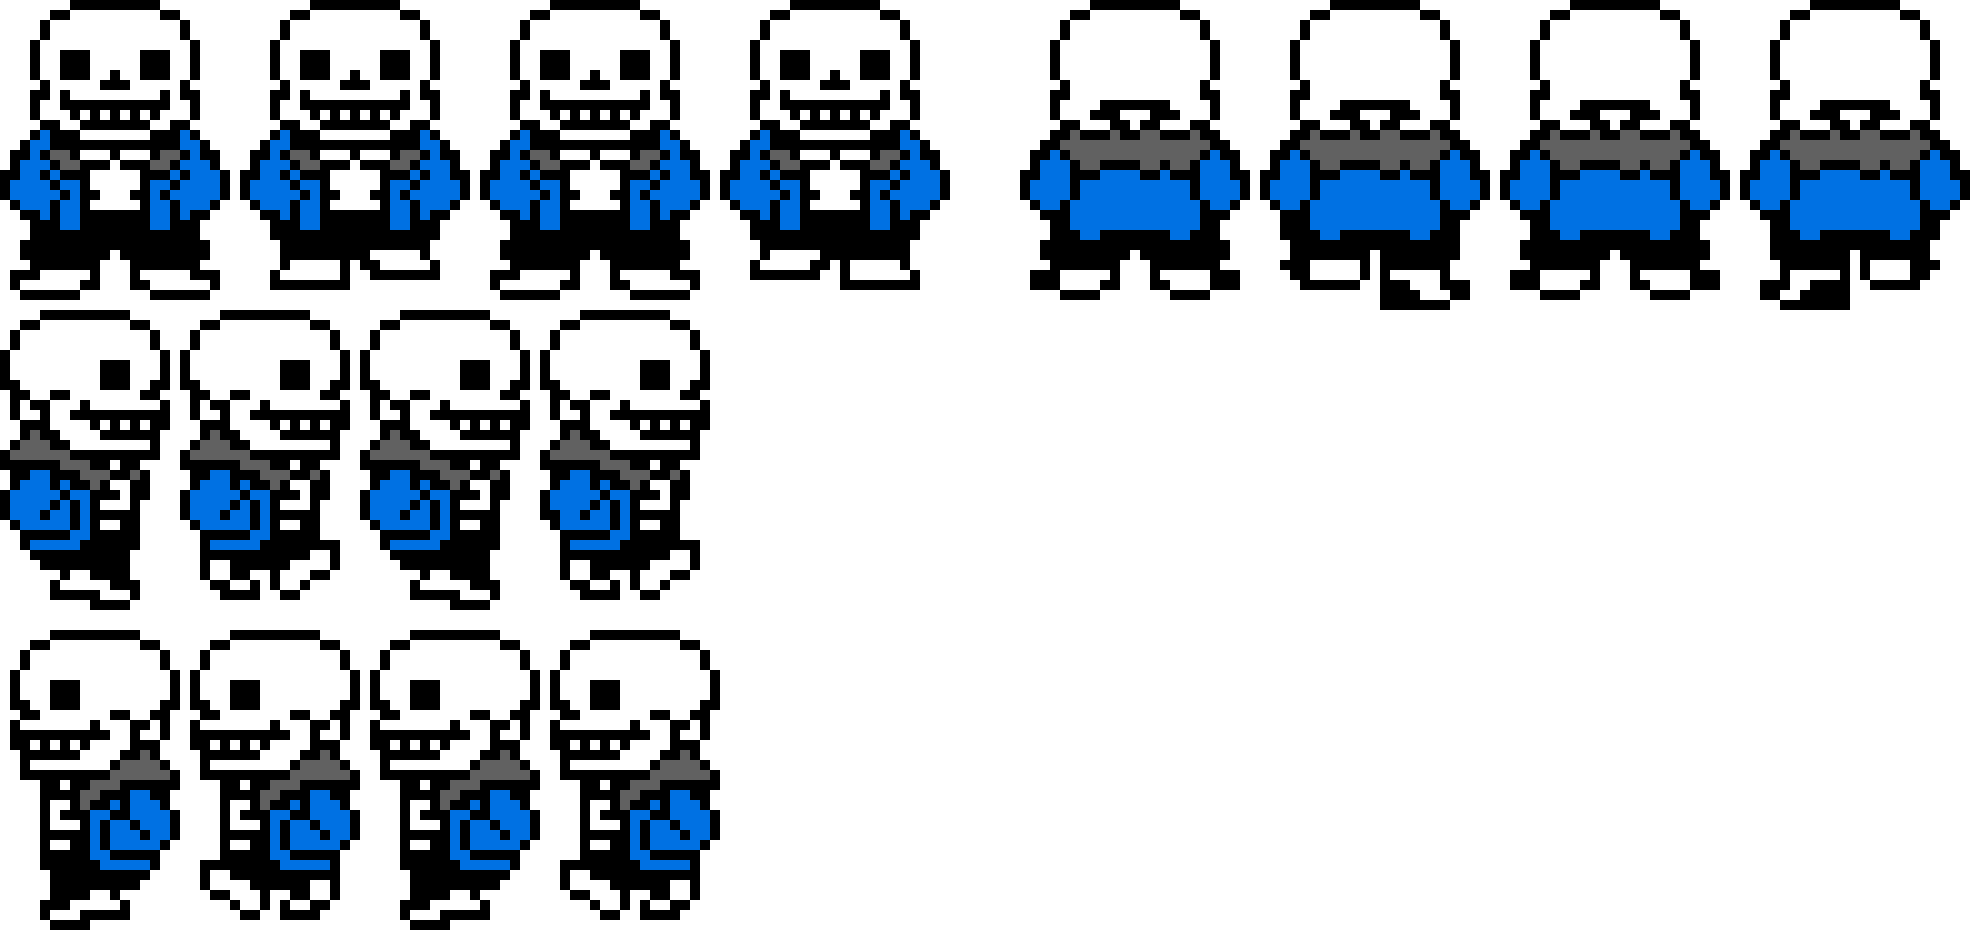 Blue Sans Undertale Text Comic Sprite PNG Image